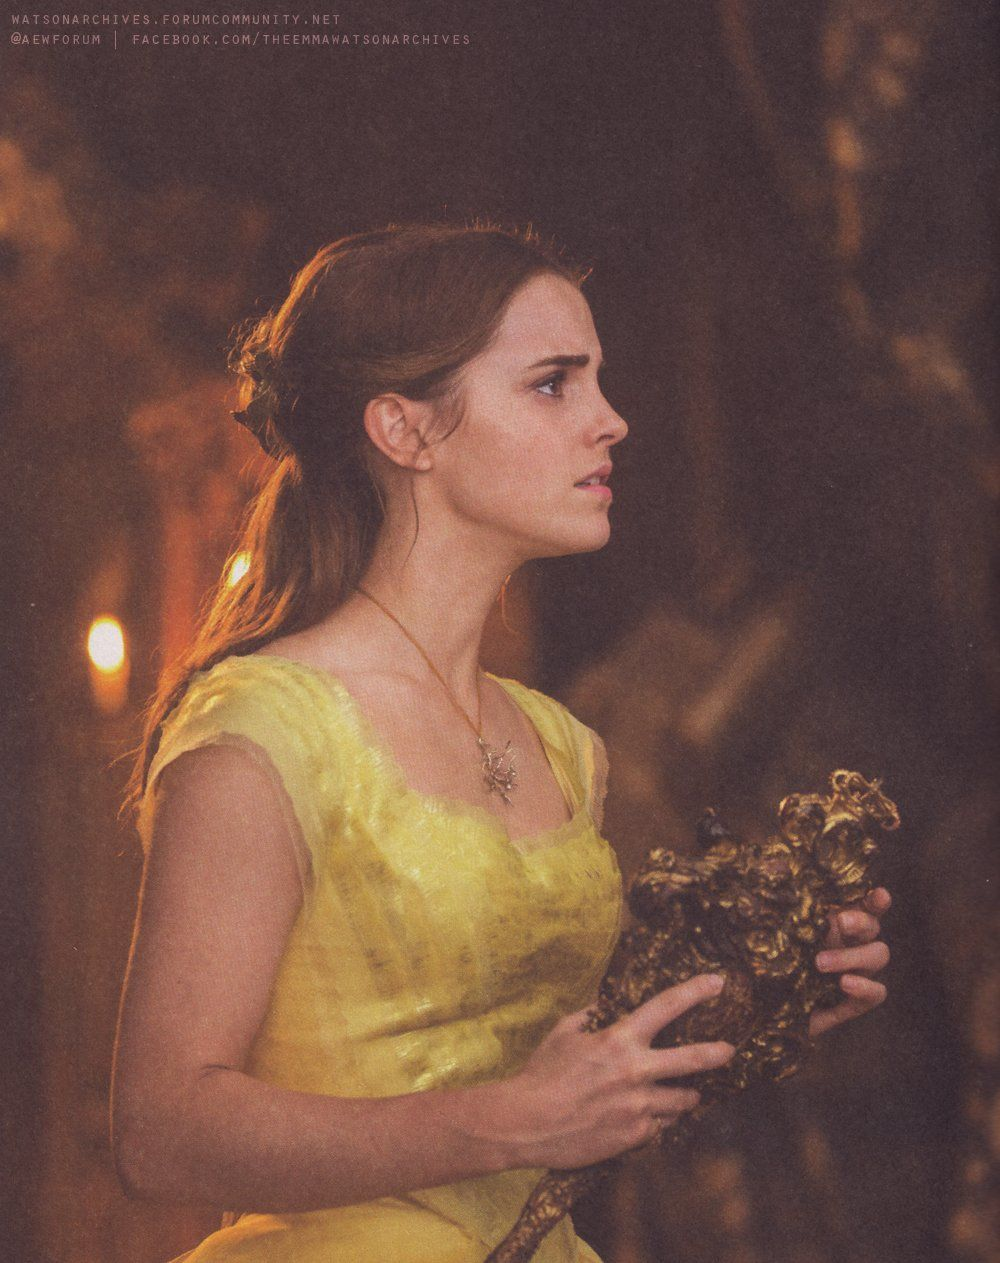 Emma Watson As Belle From The New Live Action Beauty And The Beast